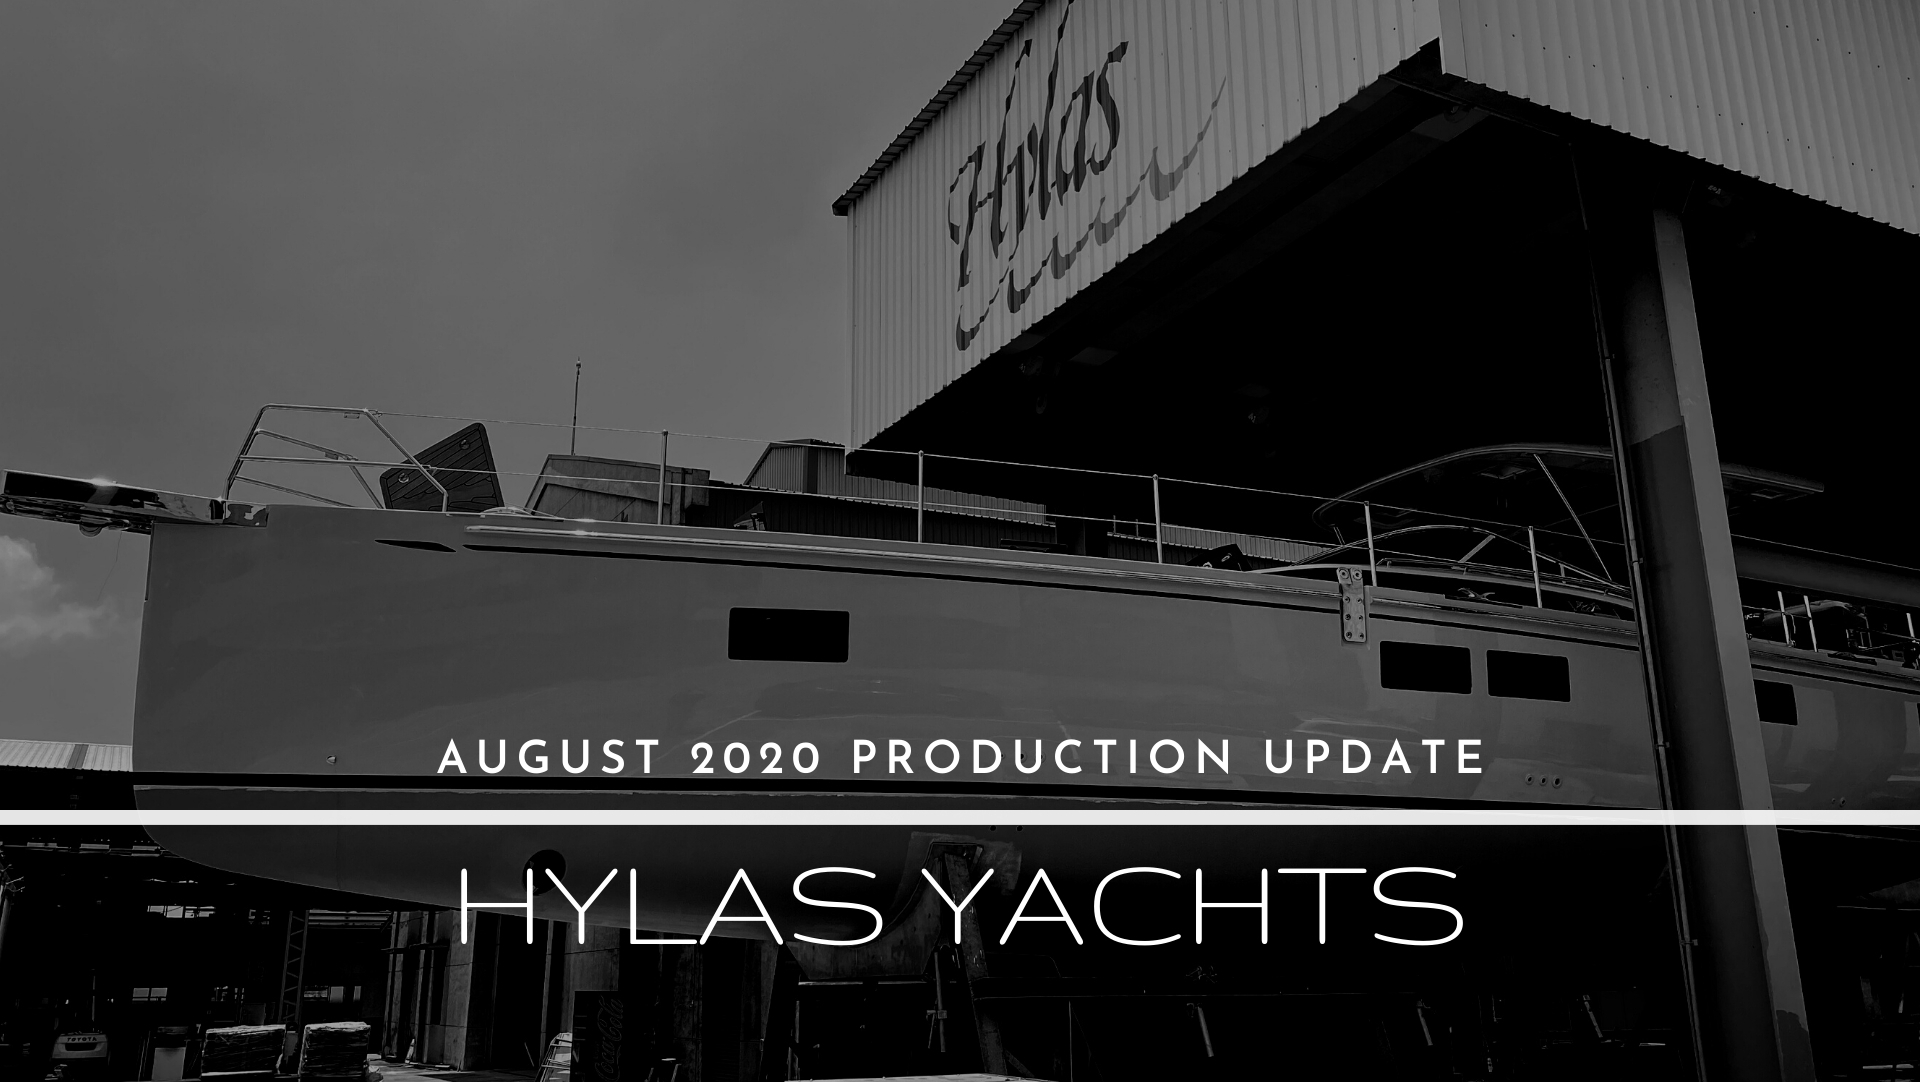 August Production Update - Hylas